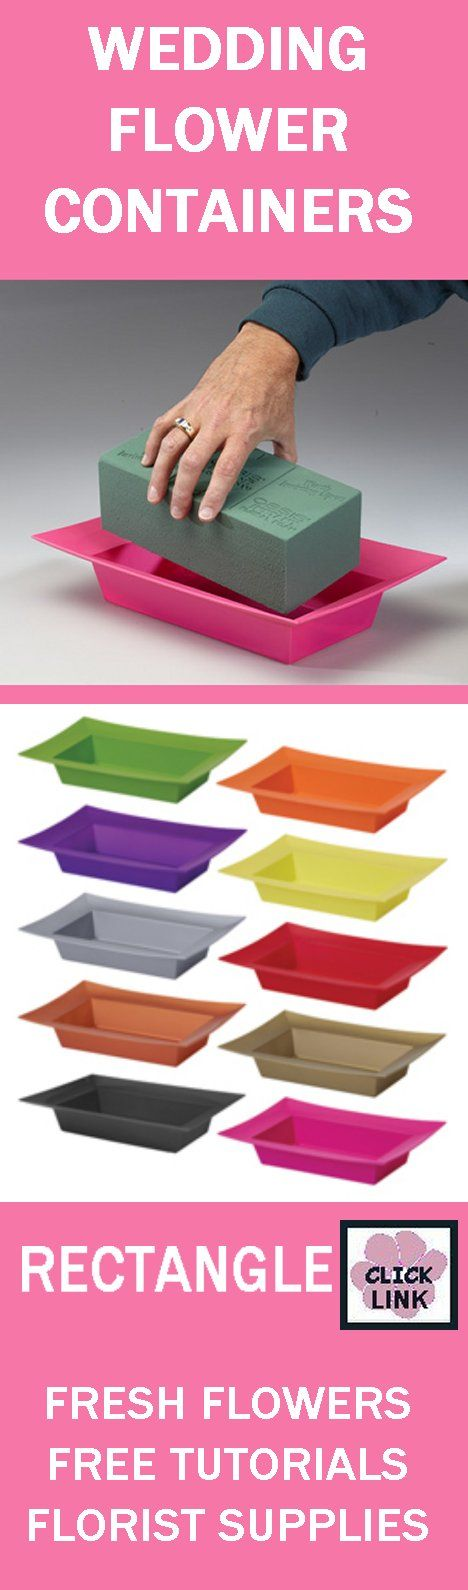 17 Best Images About Floral Supply Foam Containers On